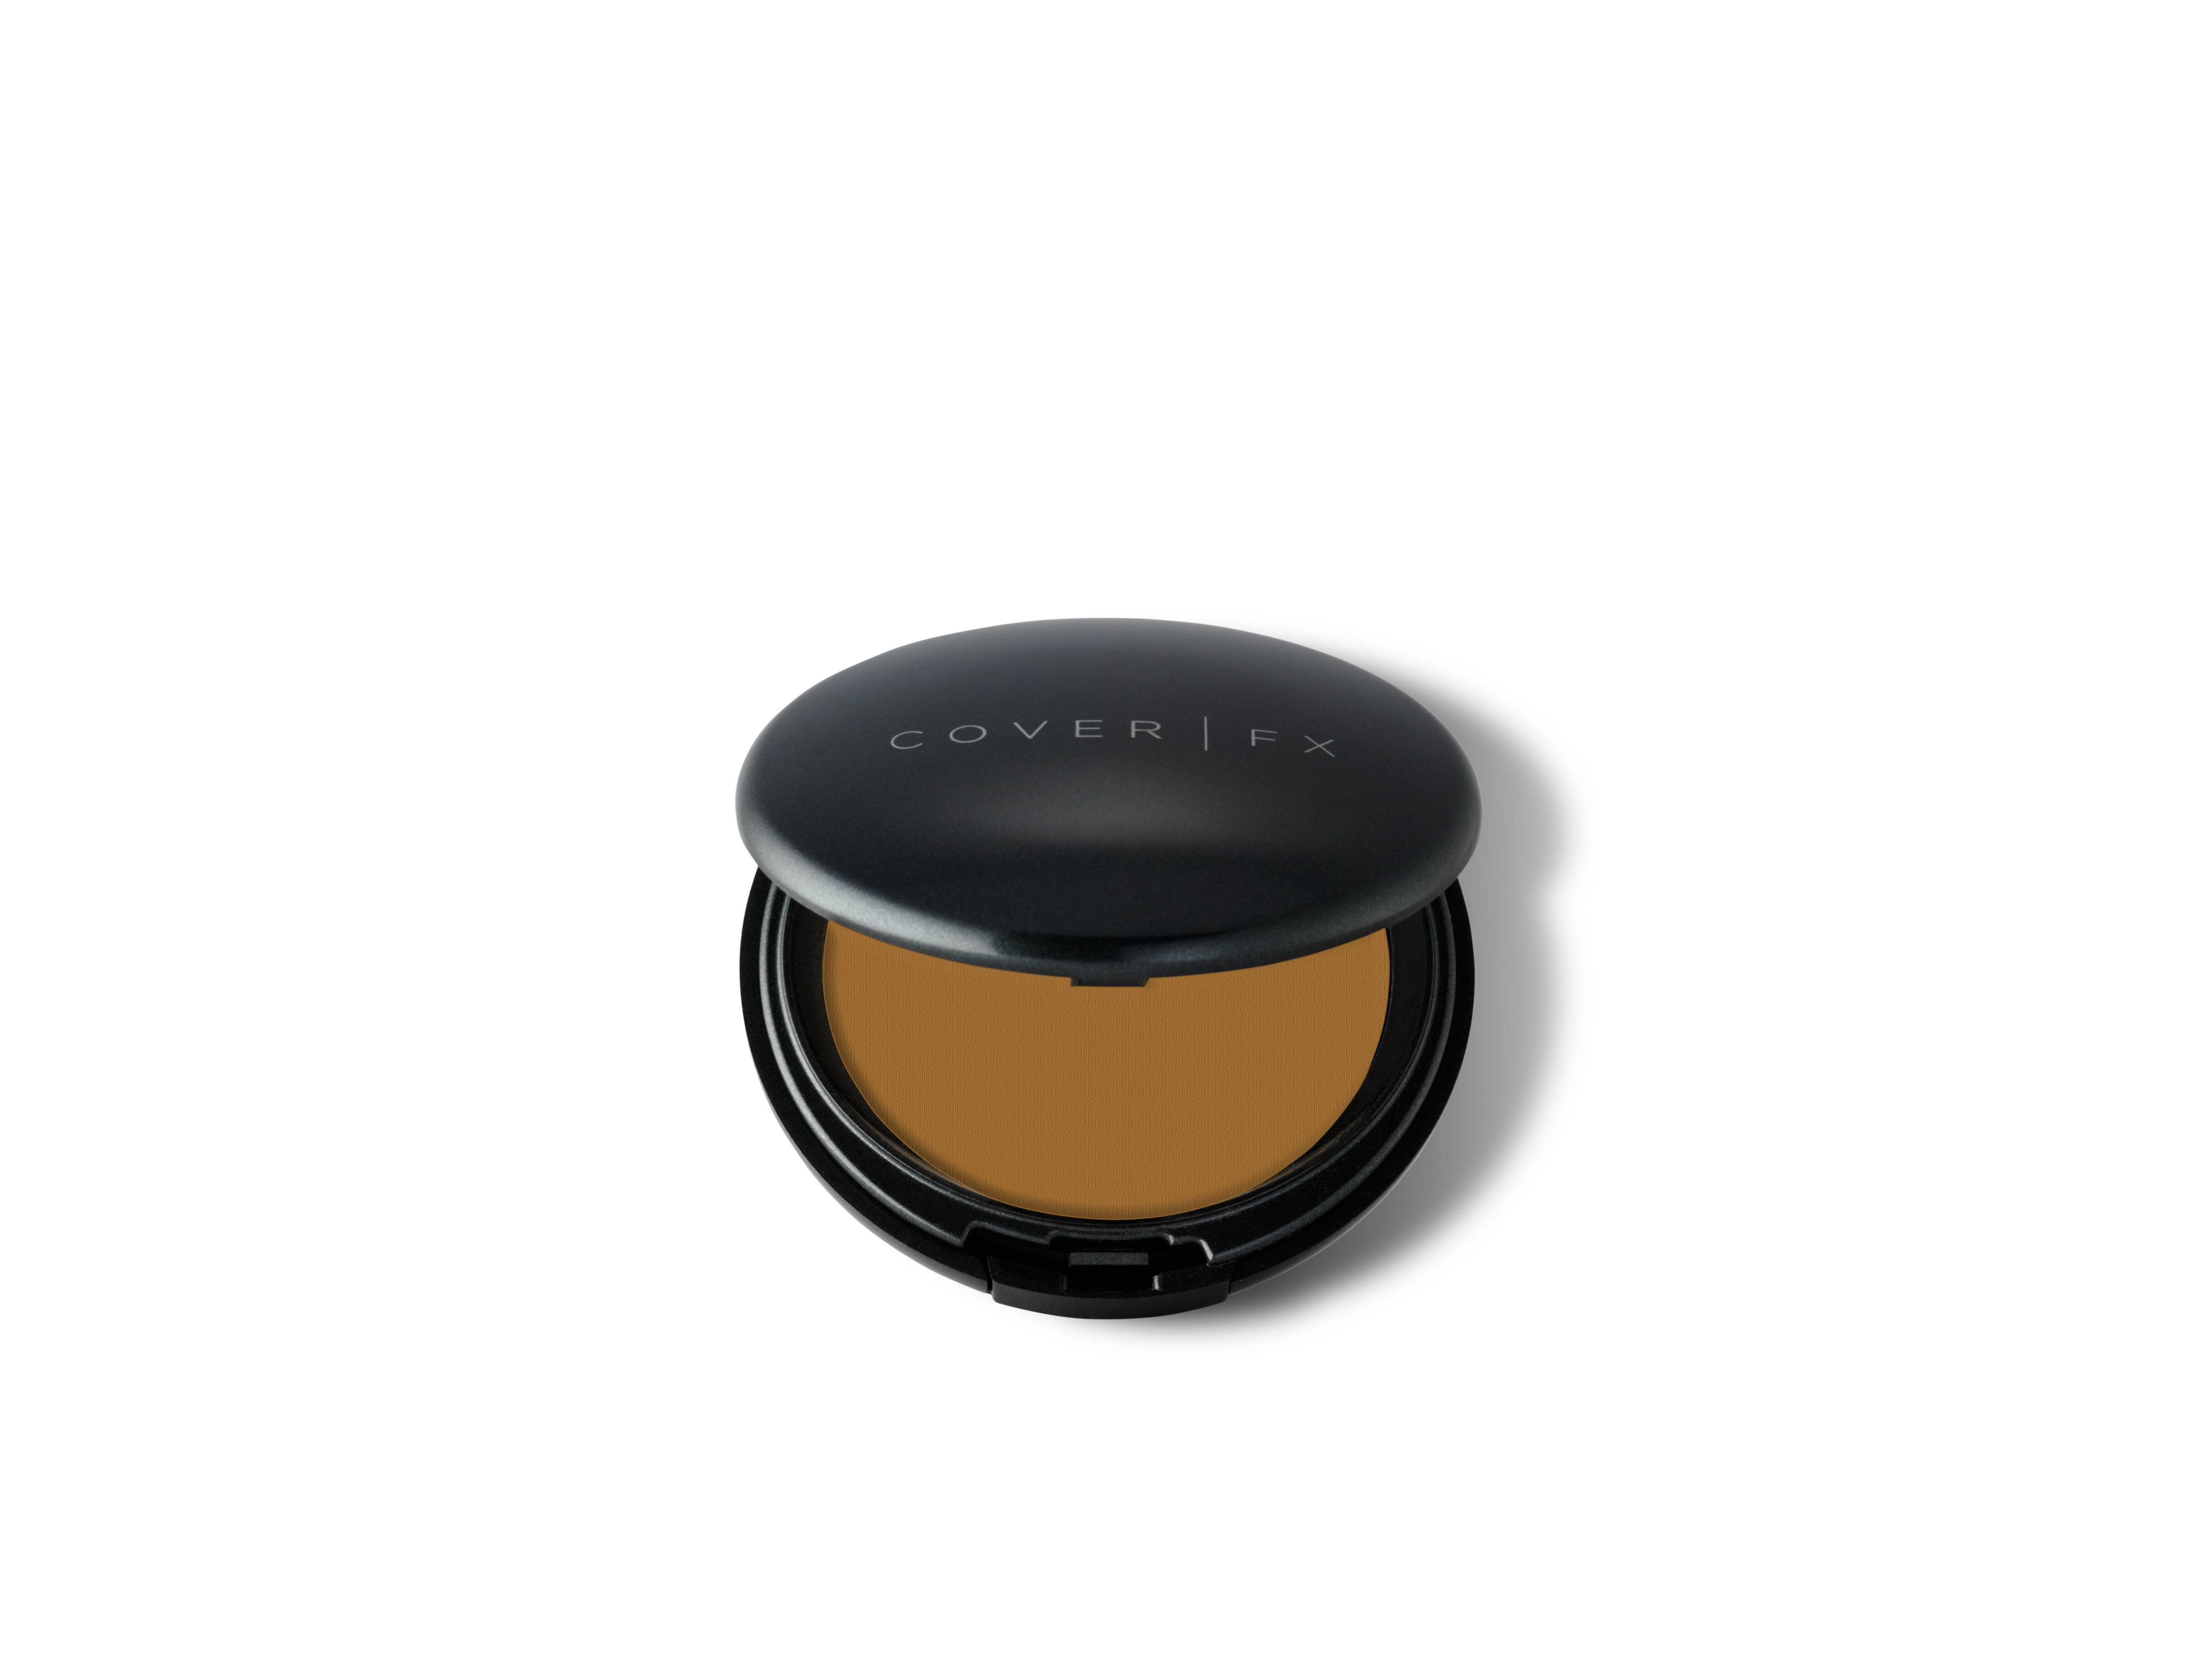 Cover FX Cover FX Pressed Mineral Foundation, G100